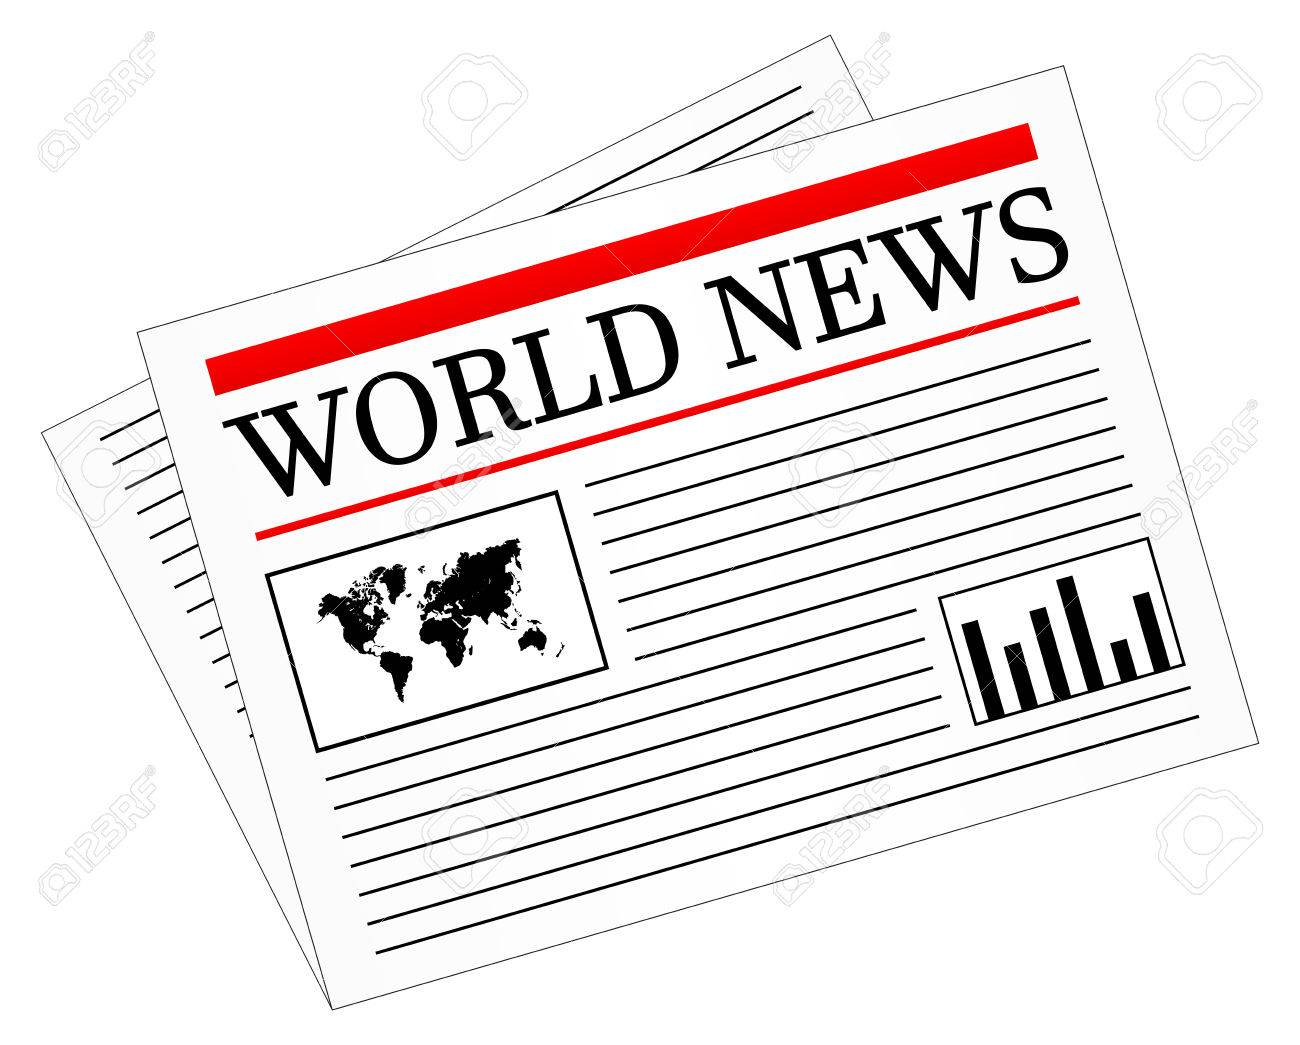 Daily News Newspaper Press Stock Vector - 23886019